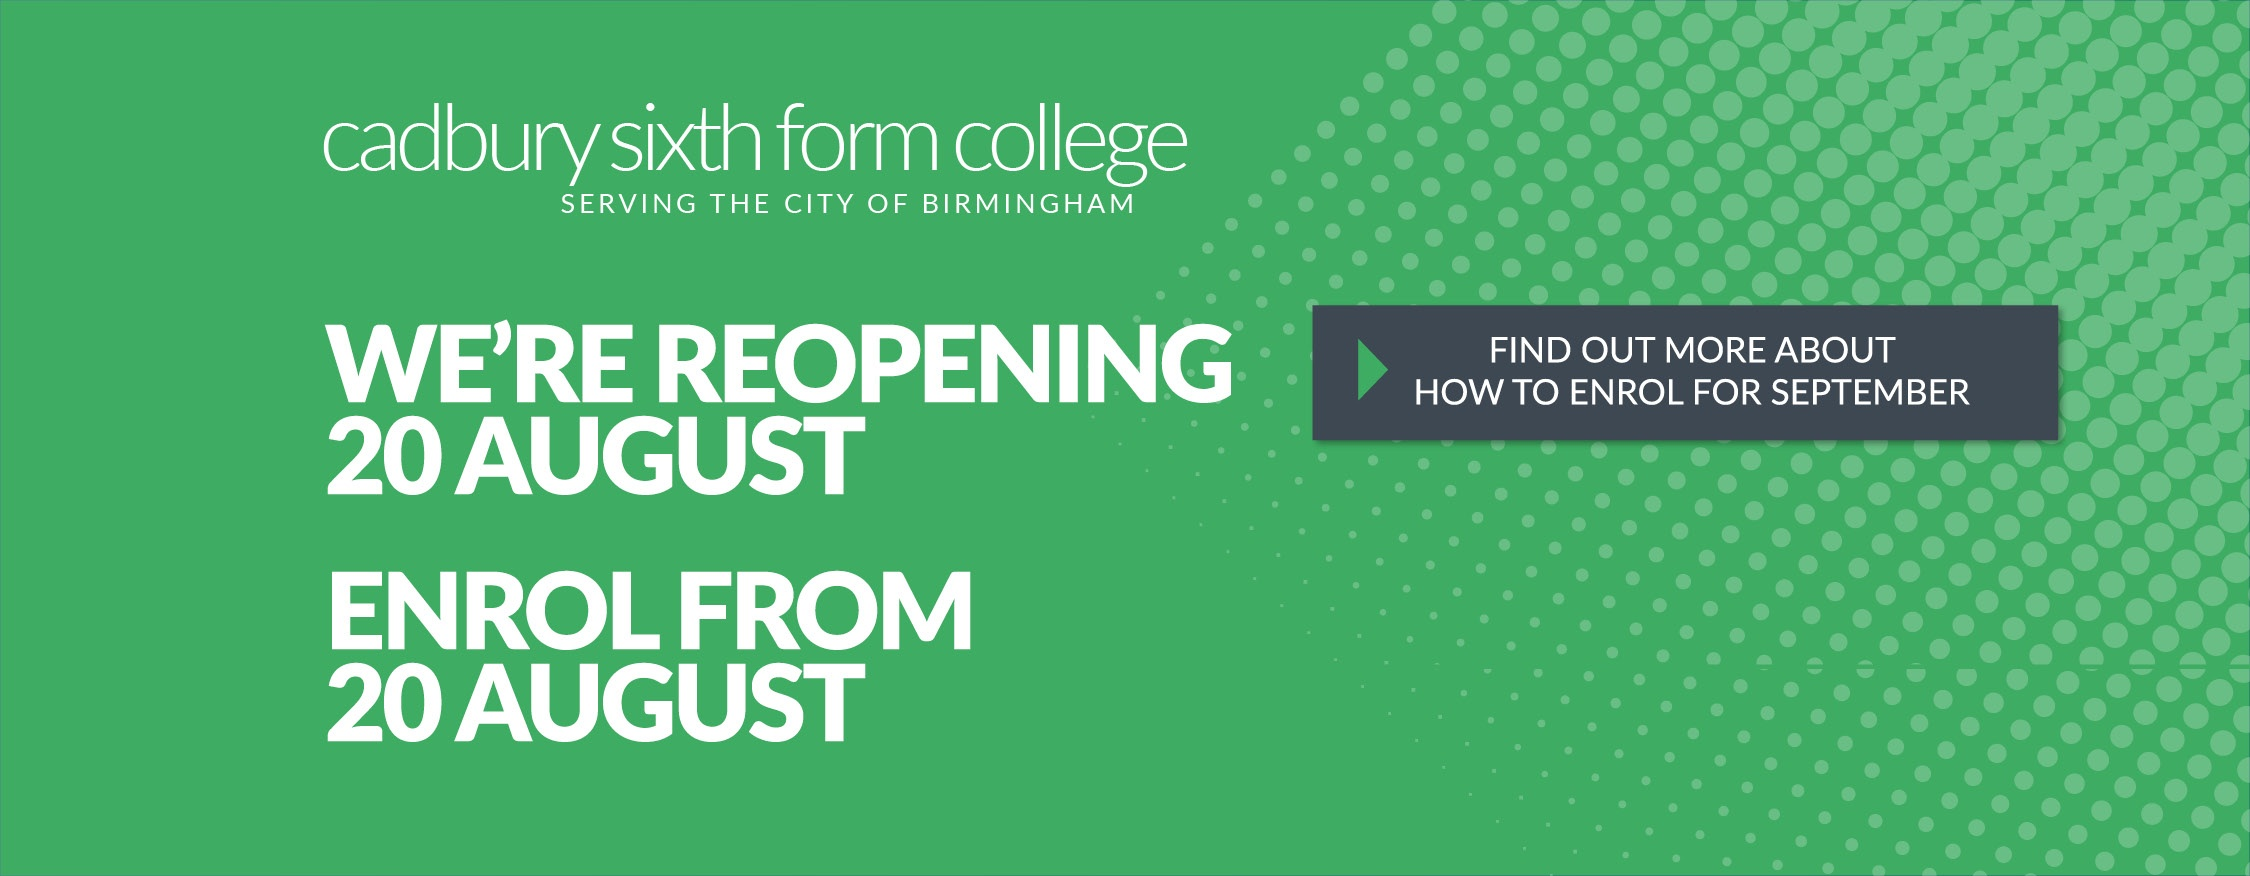 We're reopening 20 August! Enrol from 20 August